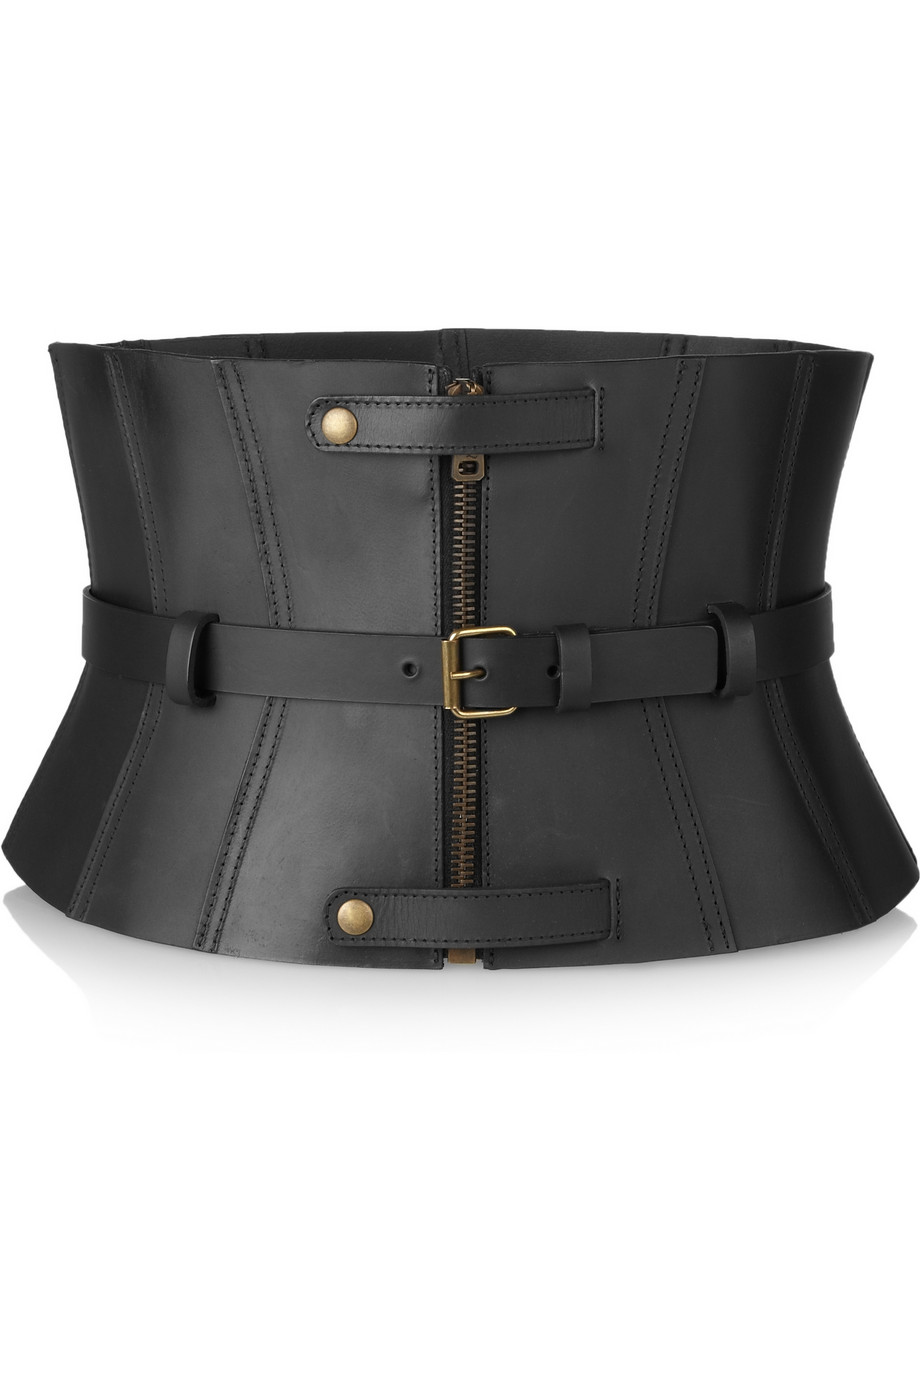 c95a9287ec Lyst - McQ Leather Corset Belt in Black